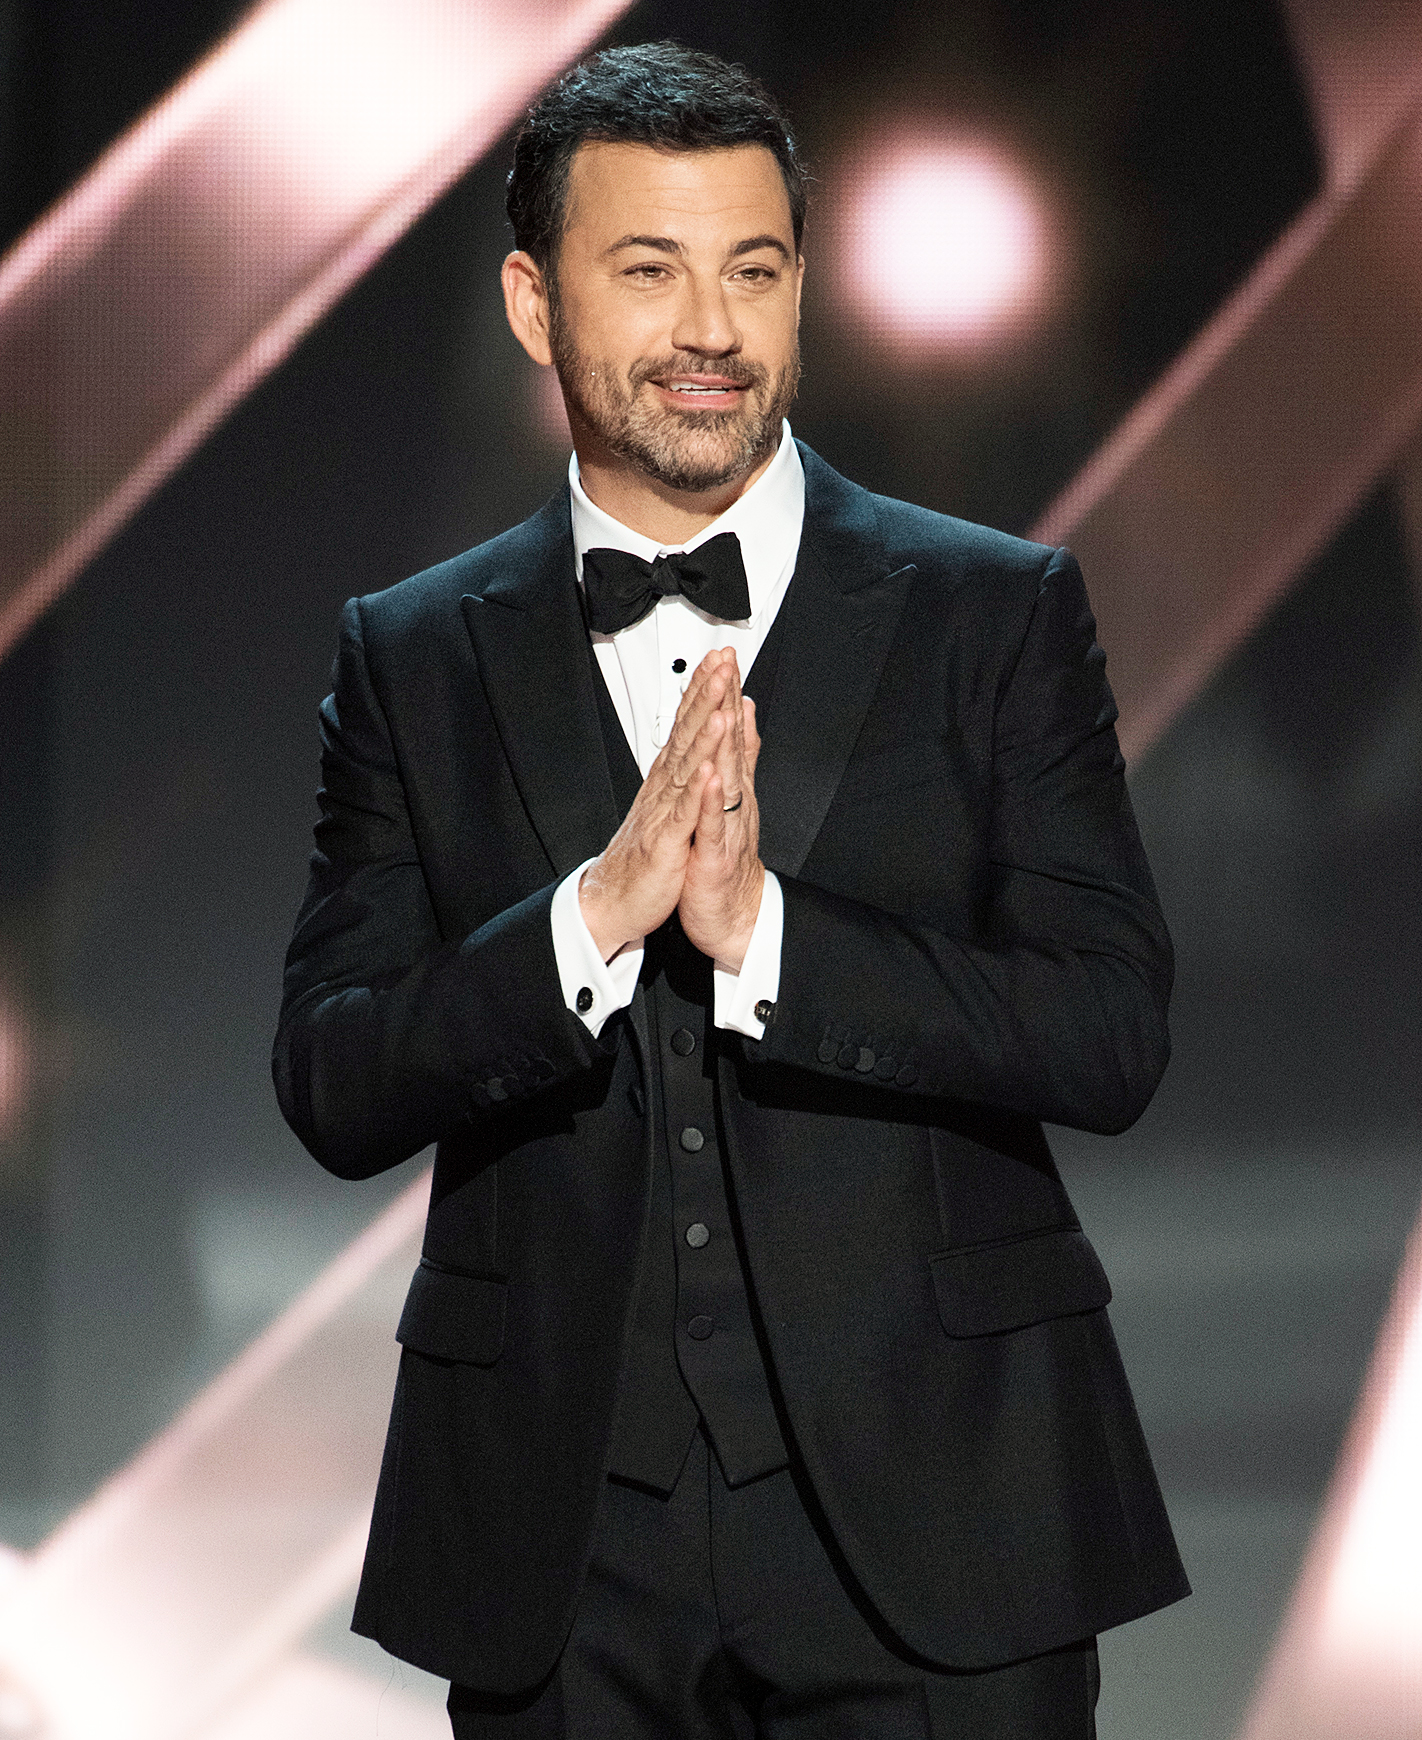 "Jimmy Kimmel Emmy Awards Host 2016 - Kimmel returned to the Emmys stage in 2016 after a four-year hiatus. ""This year's nominees are the most diverse ever, and the only thing we value more than diversity is congratulating ourselves on how much we value diversity,"" he quipped in his opening monologue."